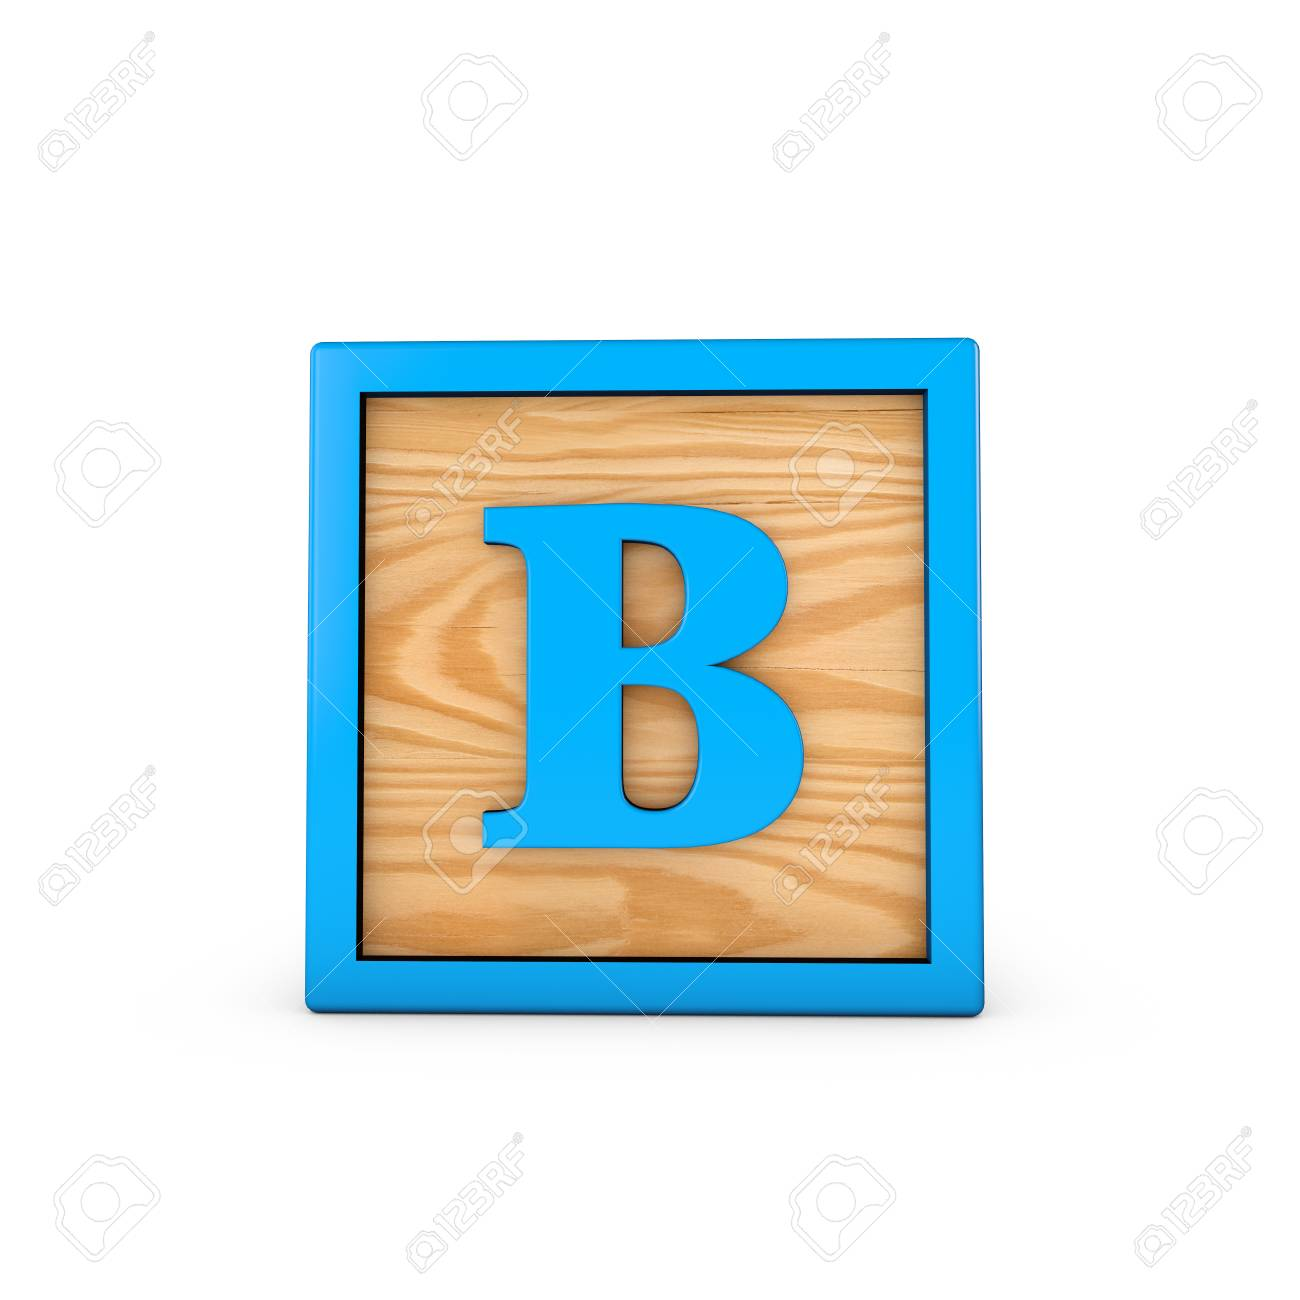 Letter B wodden childrens toy alphabet block  3D Rendering